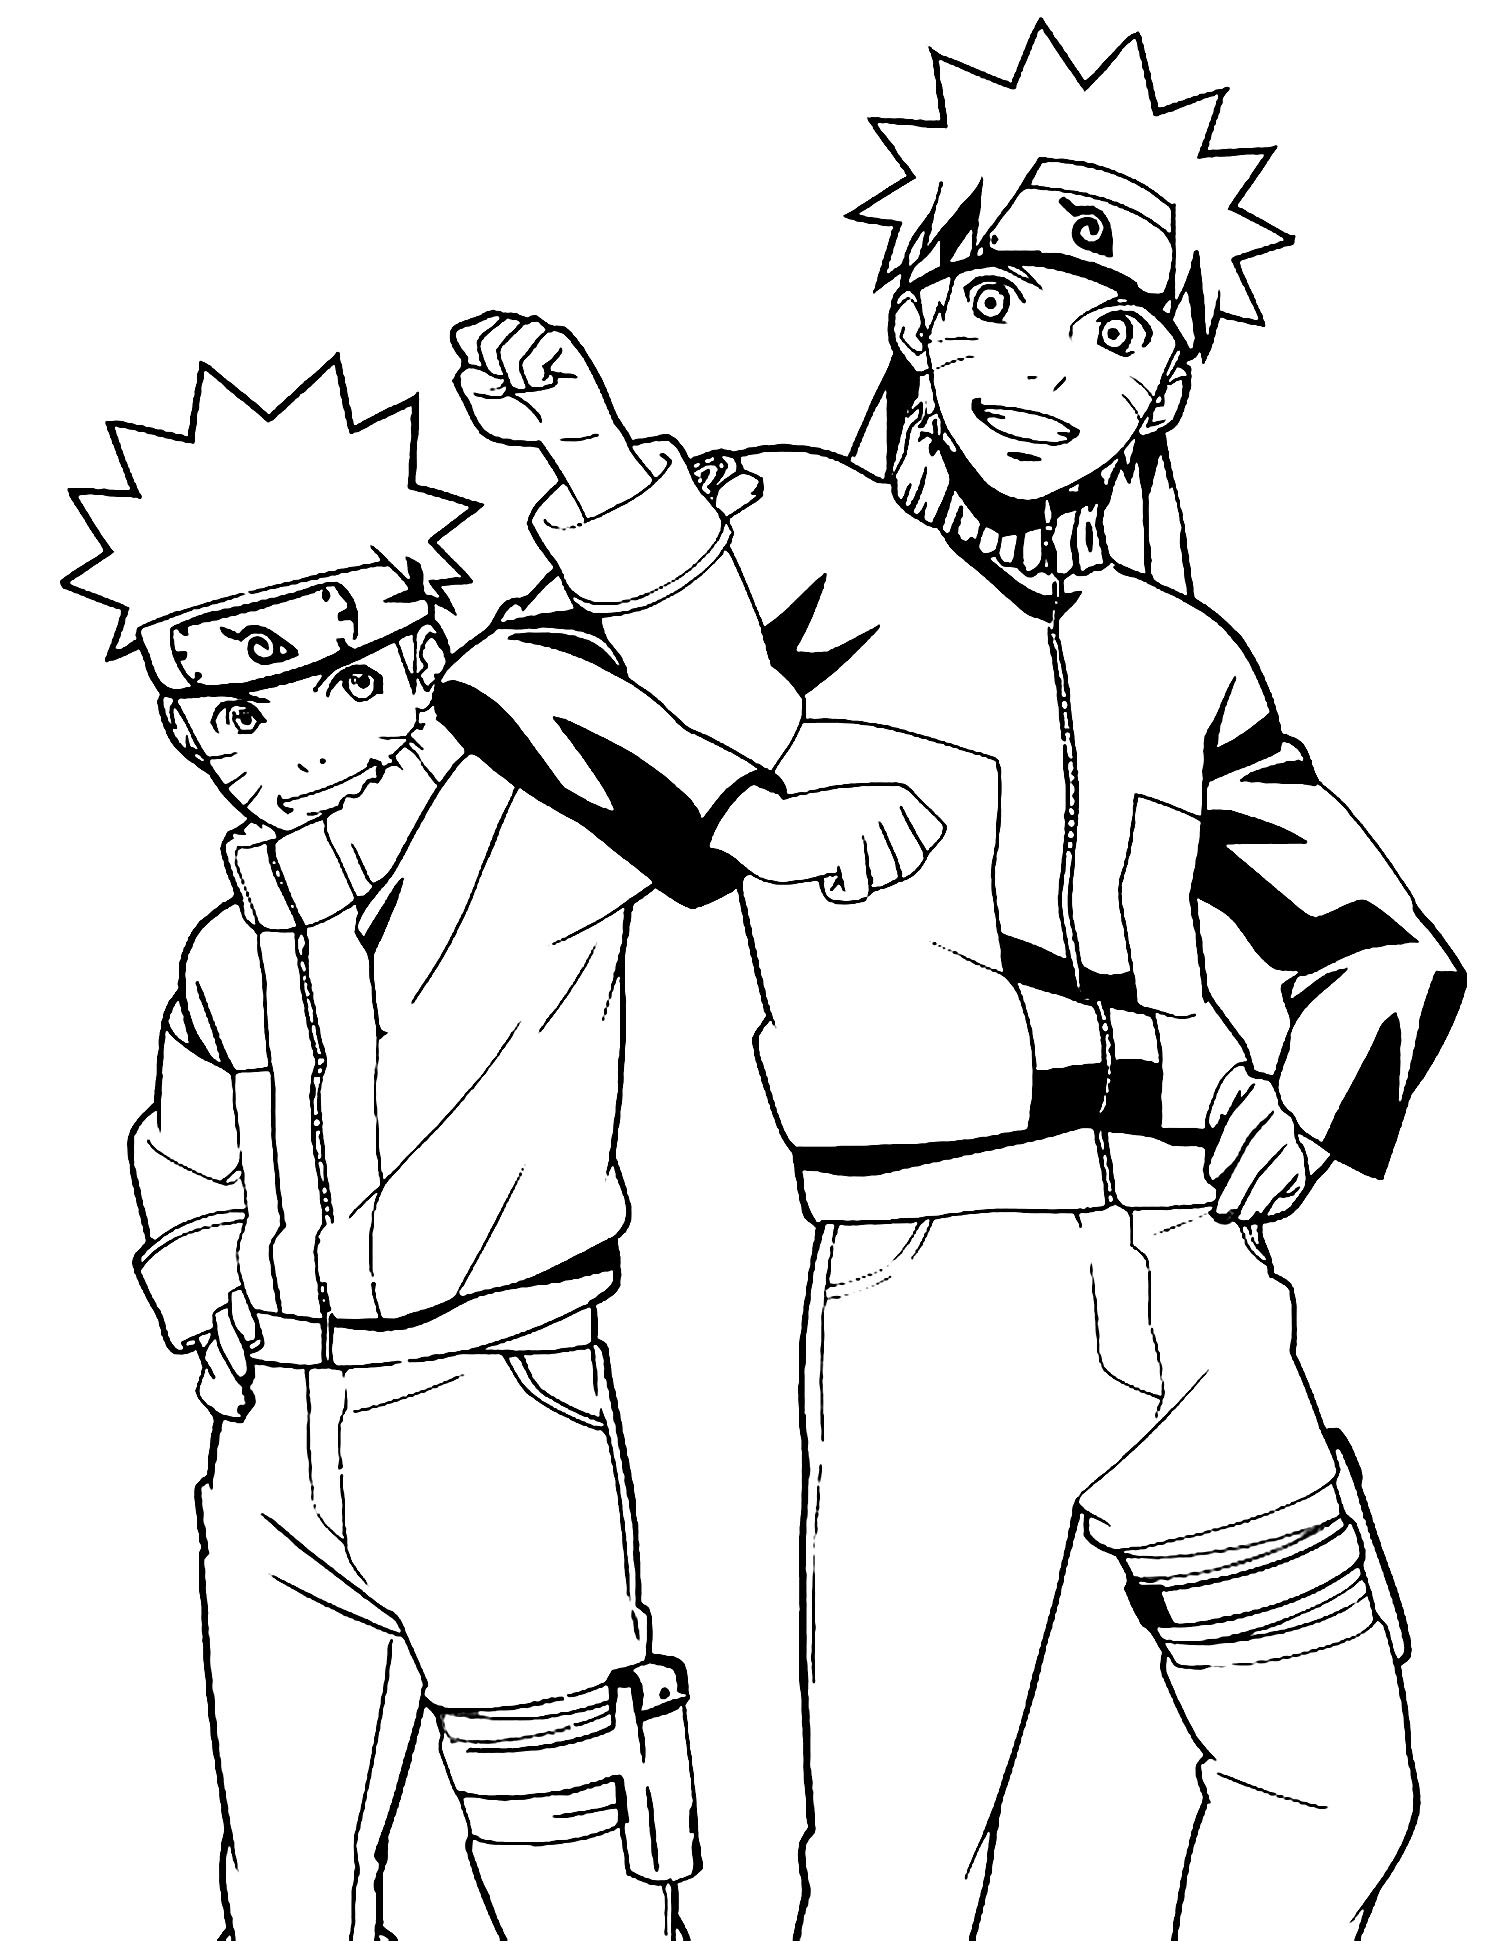 naruto coloring images printable naruto coloring pages to get your kids occupied naruto coloring images 1 3